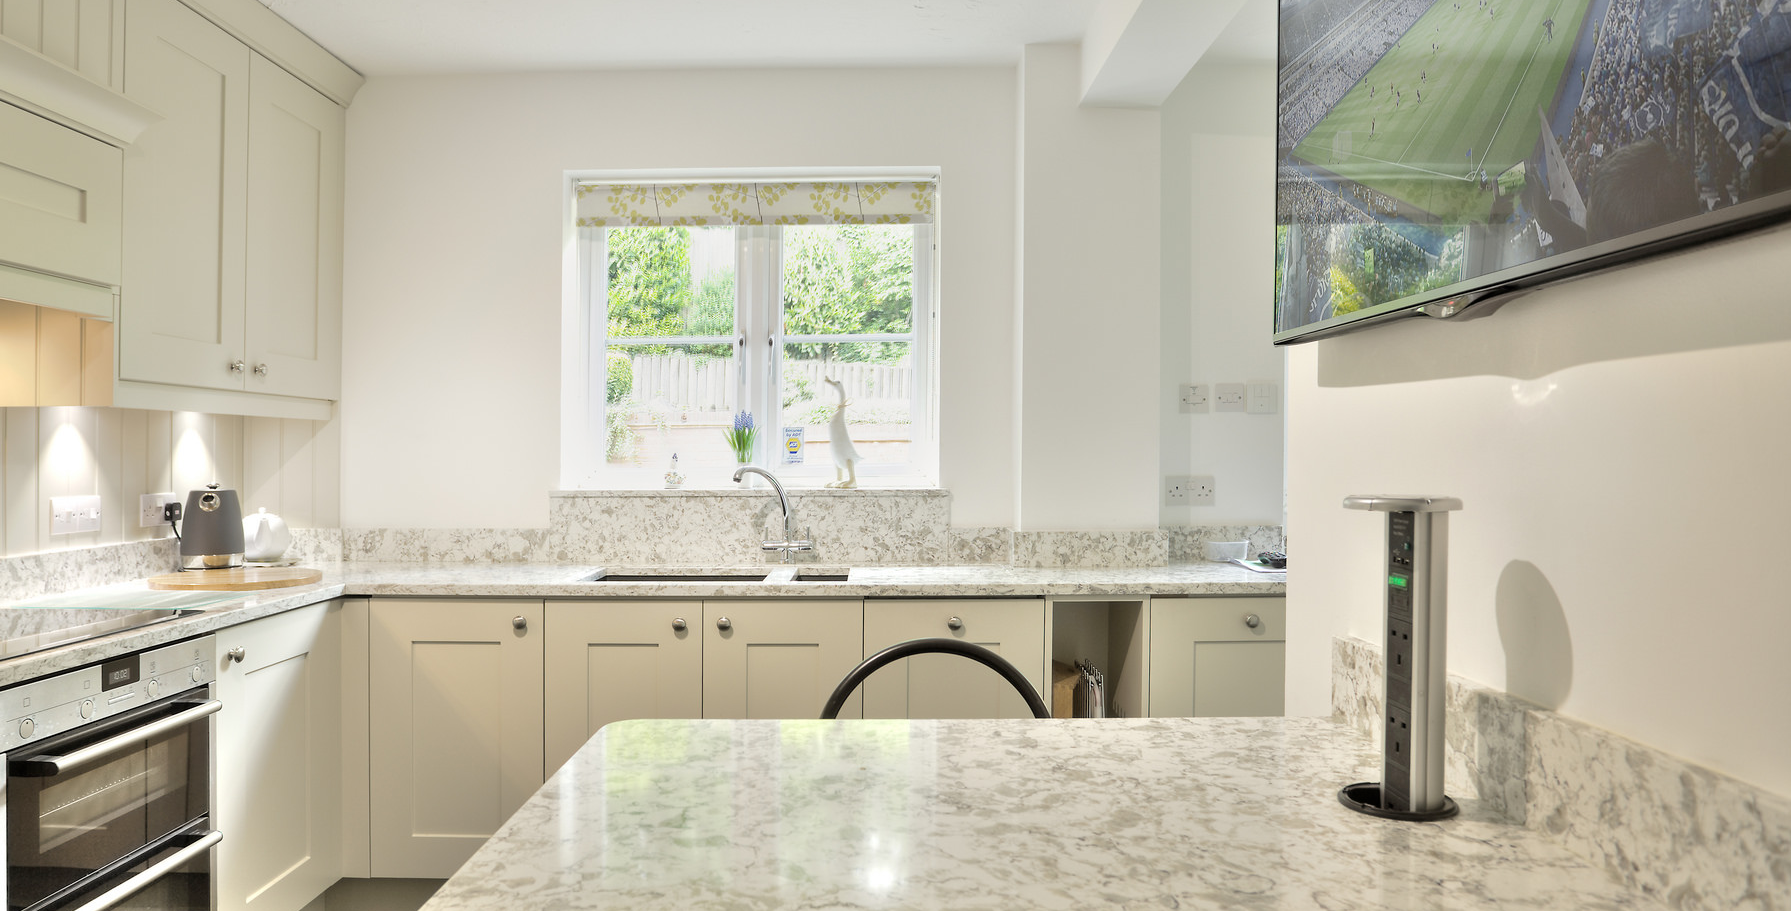 Kitchen Worktops & Kitchen Flooring | Landford Stone